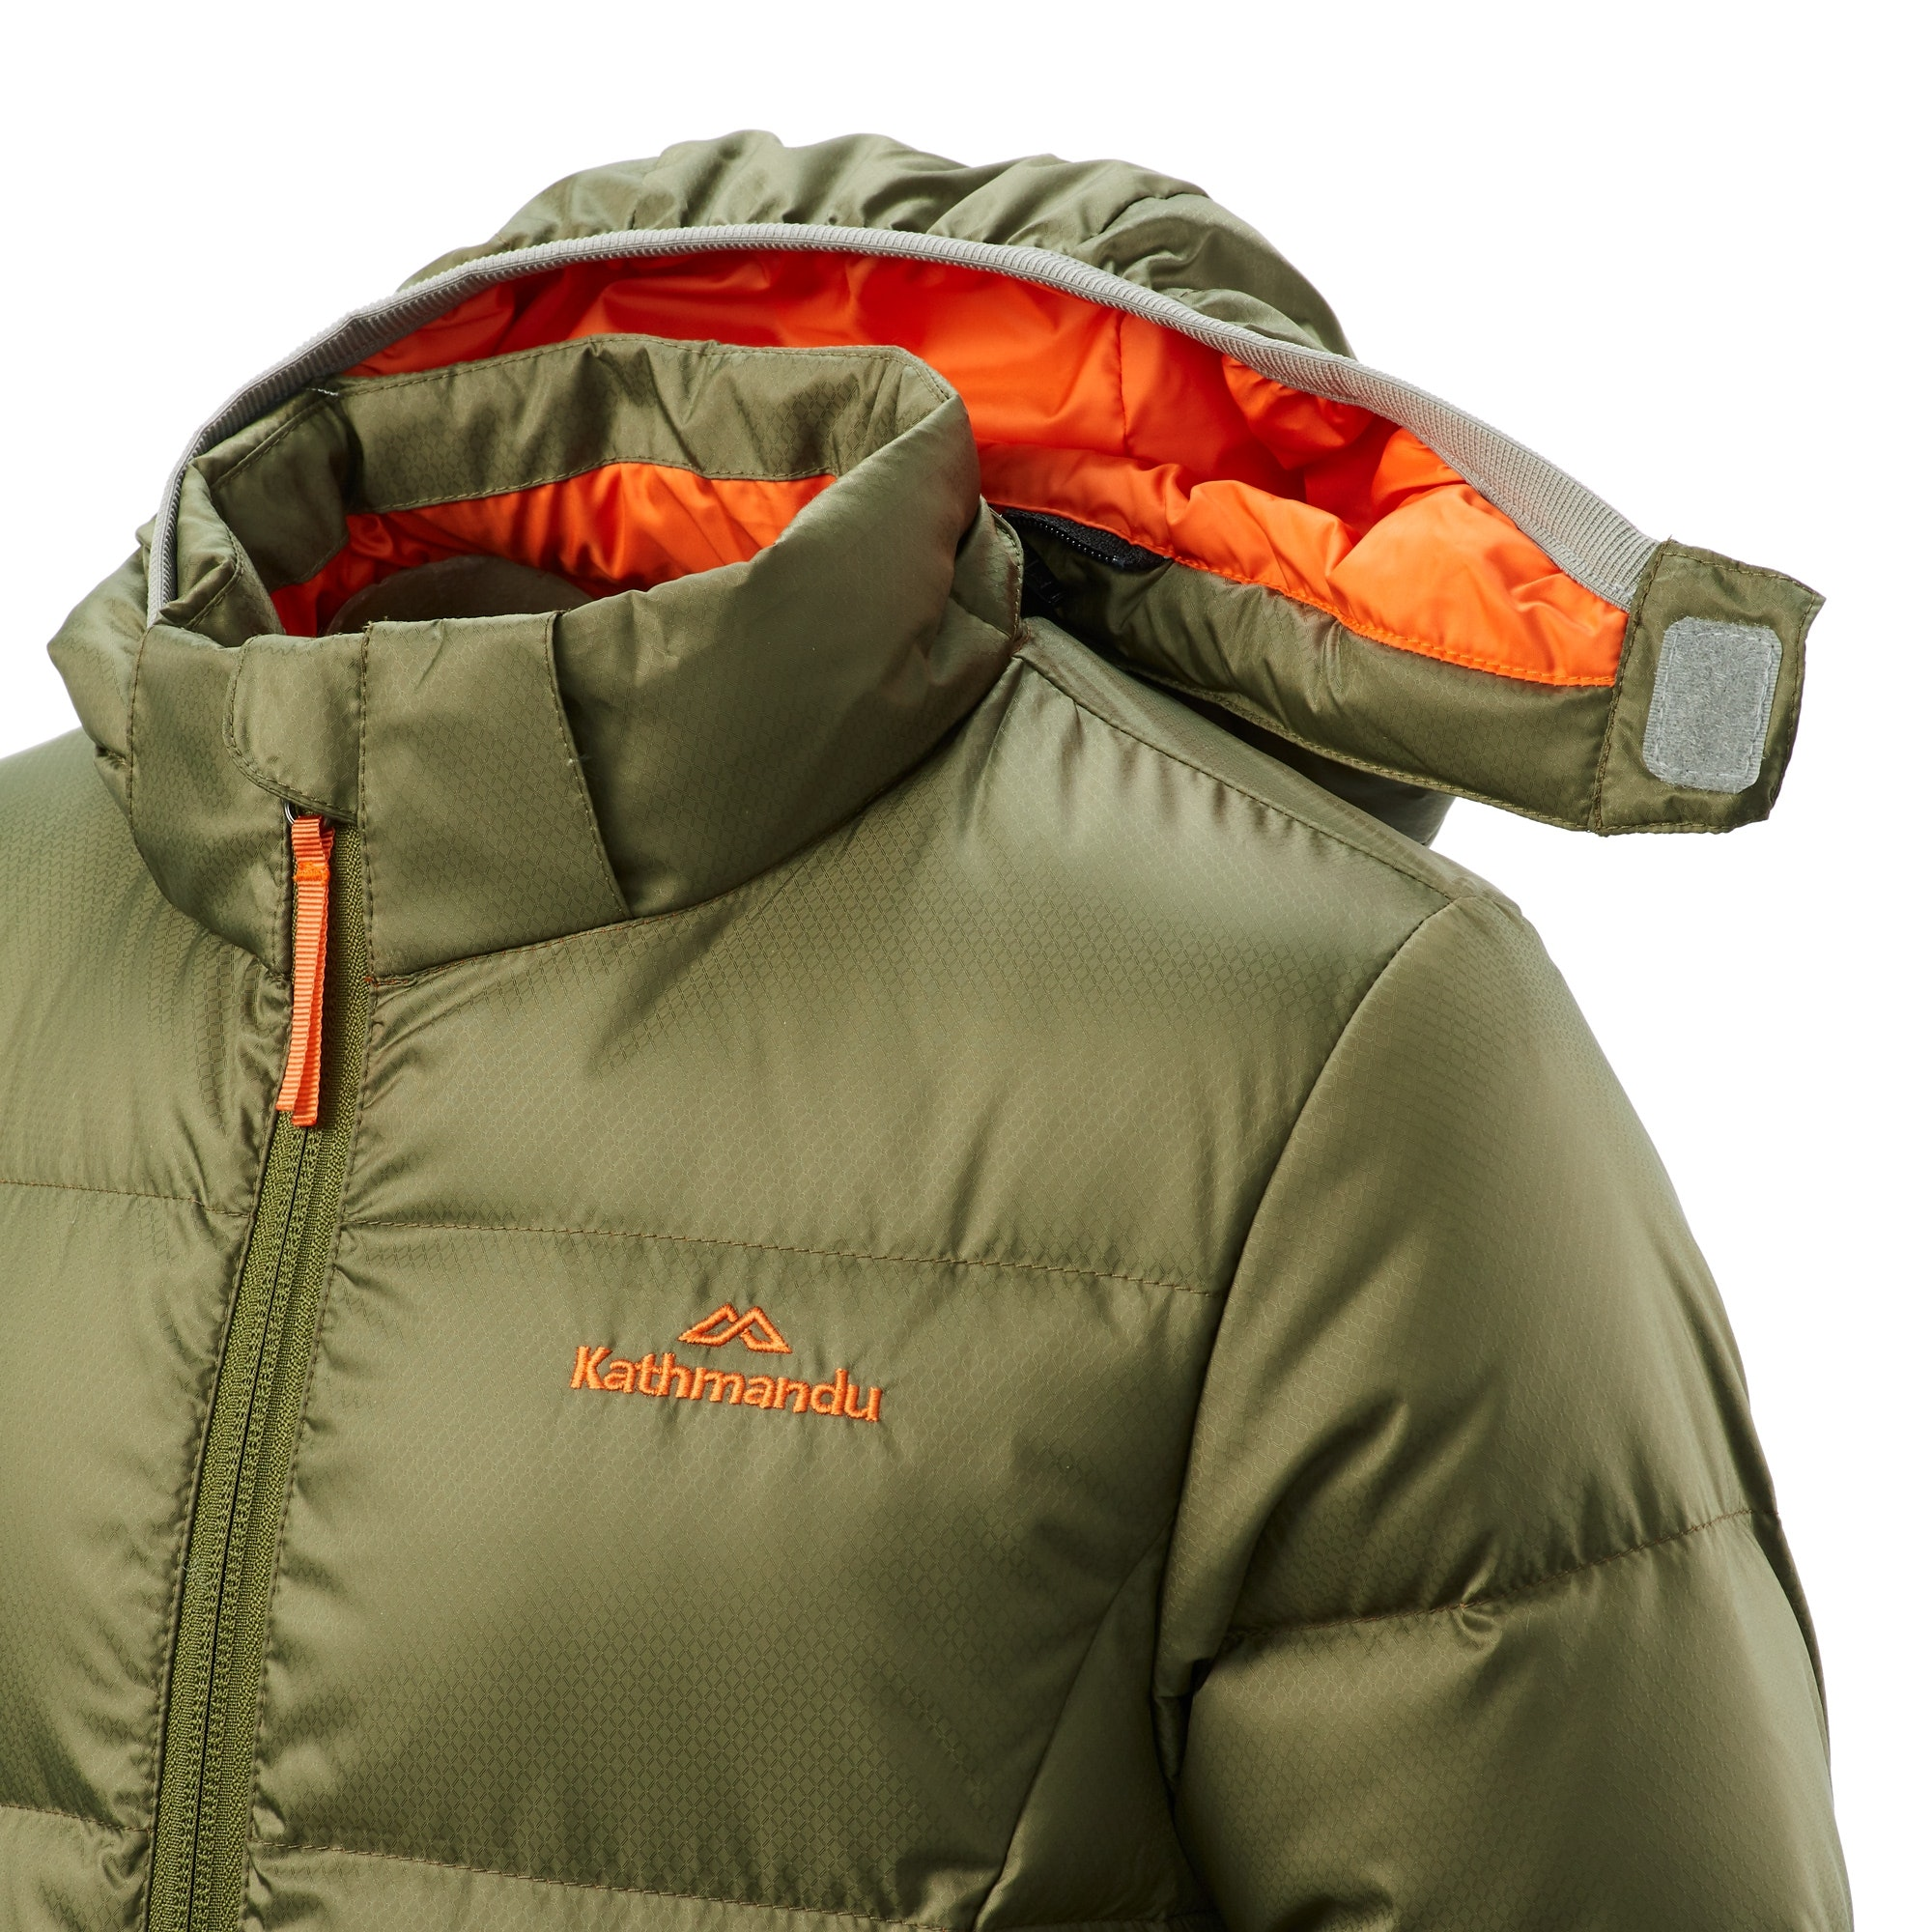 Kathmandu-Elcho-Kids-Boys-Girls-Hood-Warm-Winter-Outdoor-Duck-Down-Puffer-Jacket thumbnail 22